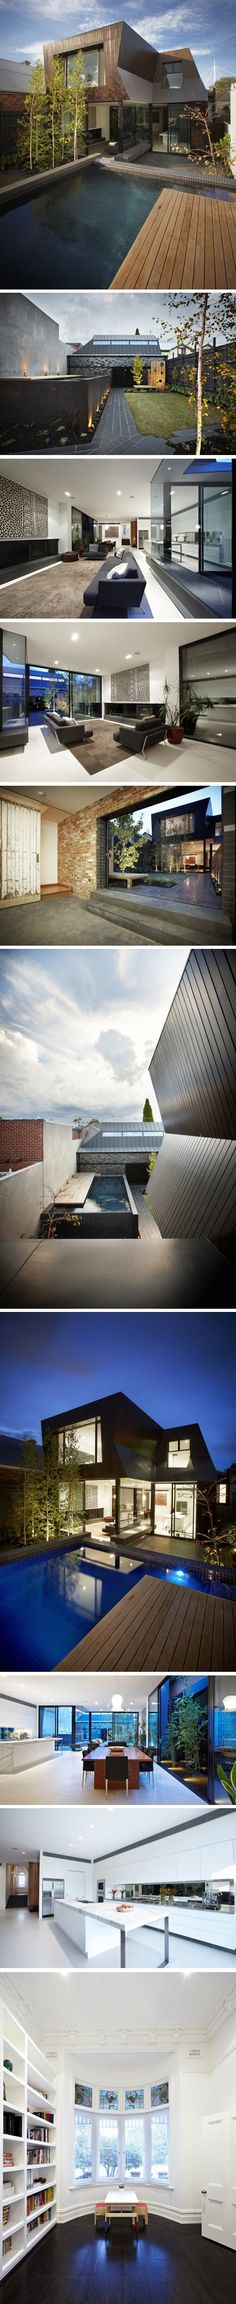 The Enclave House par BKK Architects